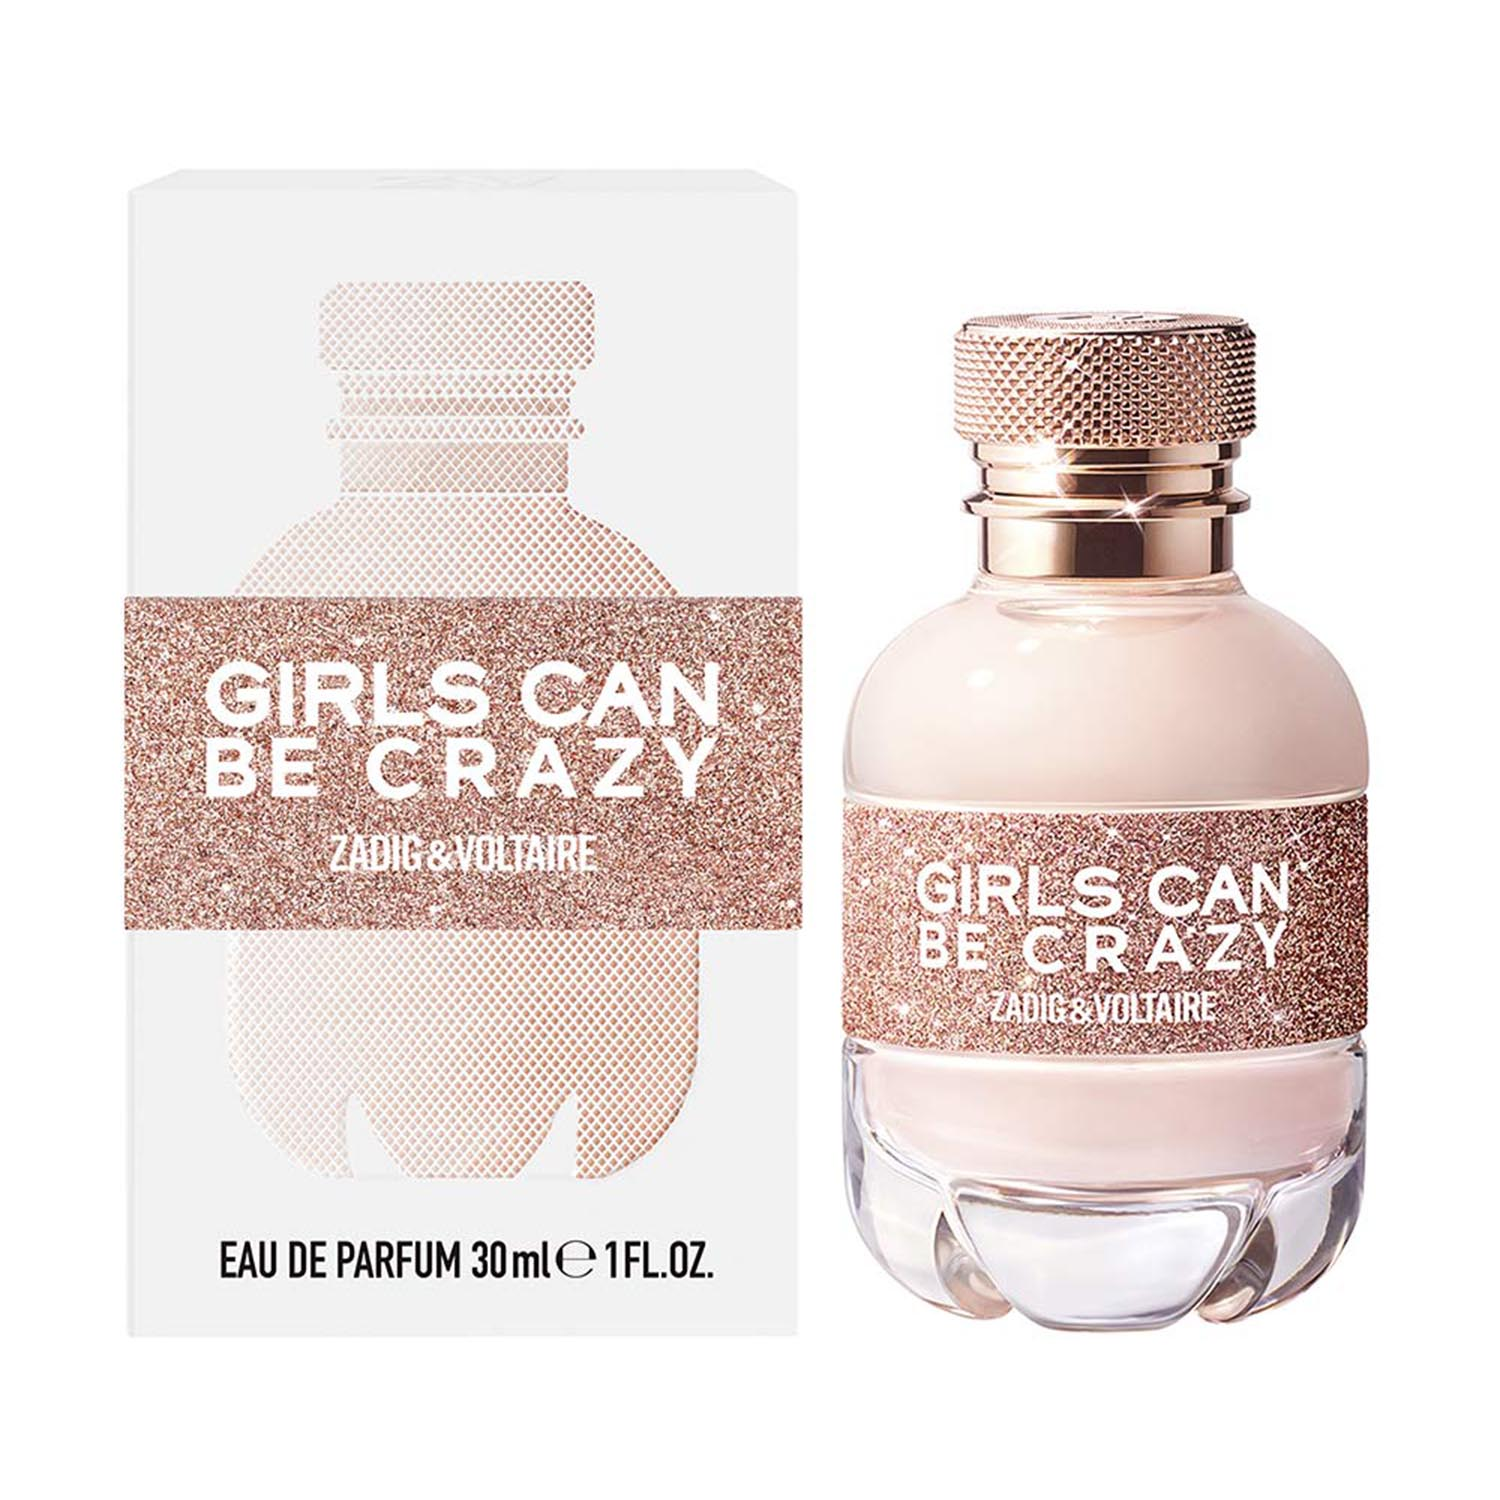 Zadig voltaire girls can be crazy eau de parfum 30ml